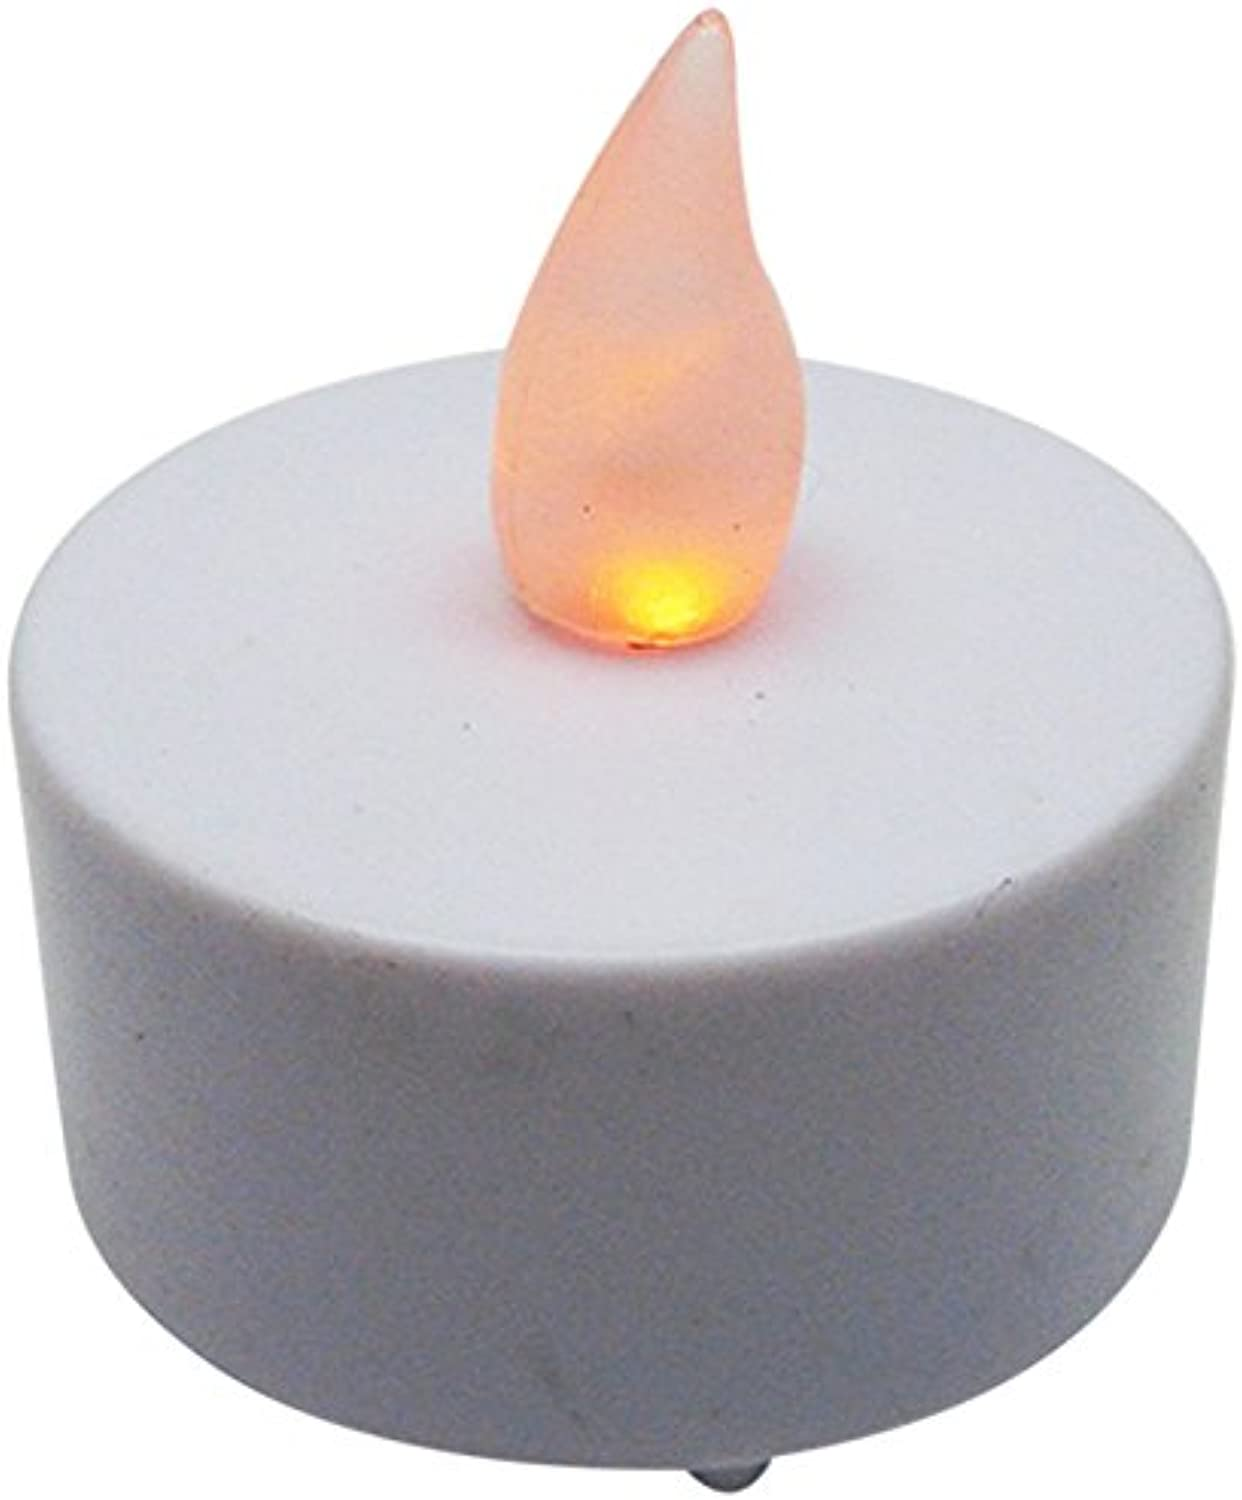 blueedot Trading Flameless Battery Operated LED Tea Lights, Amber color Flame, 100-Pack